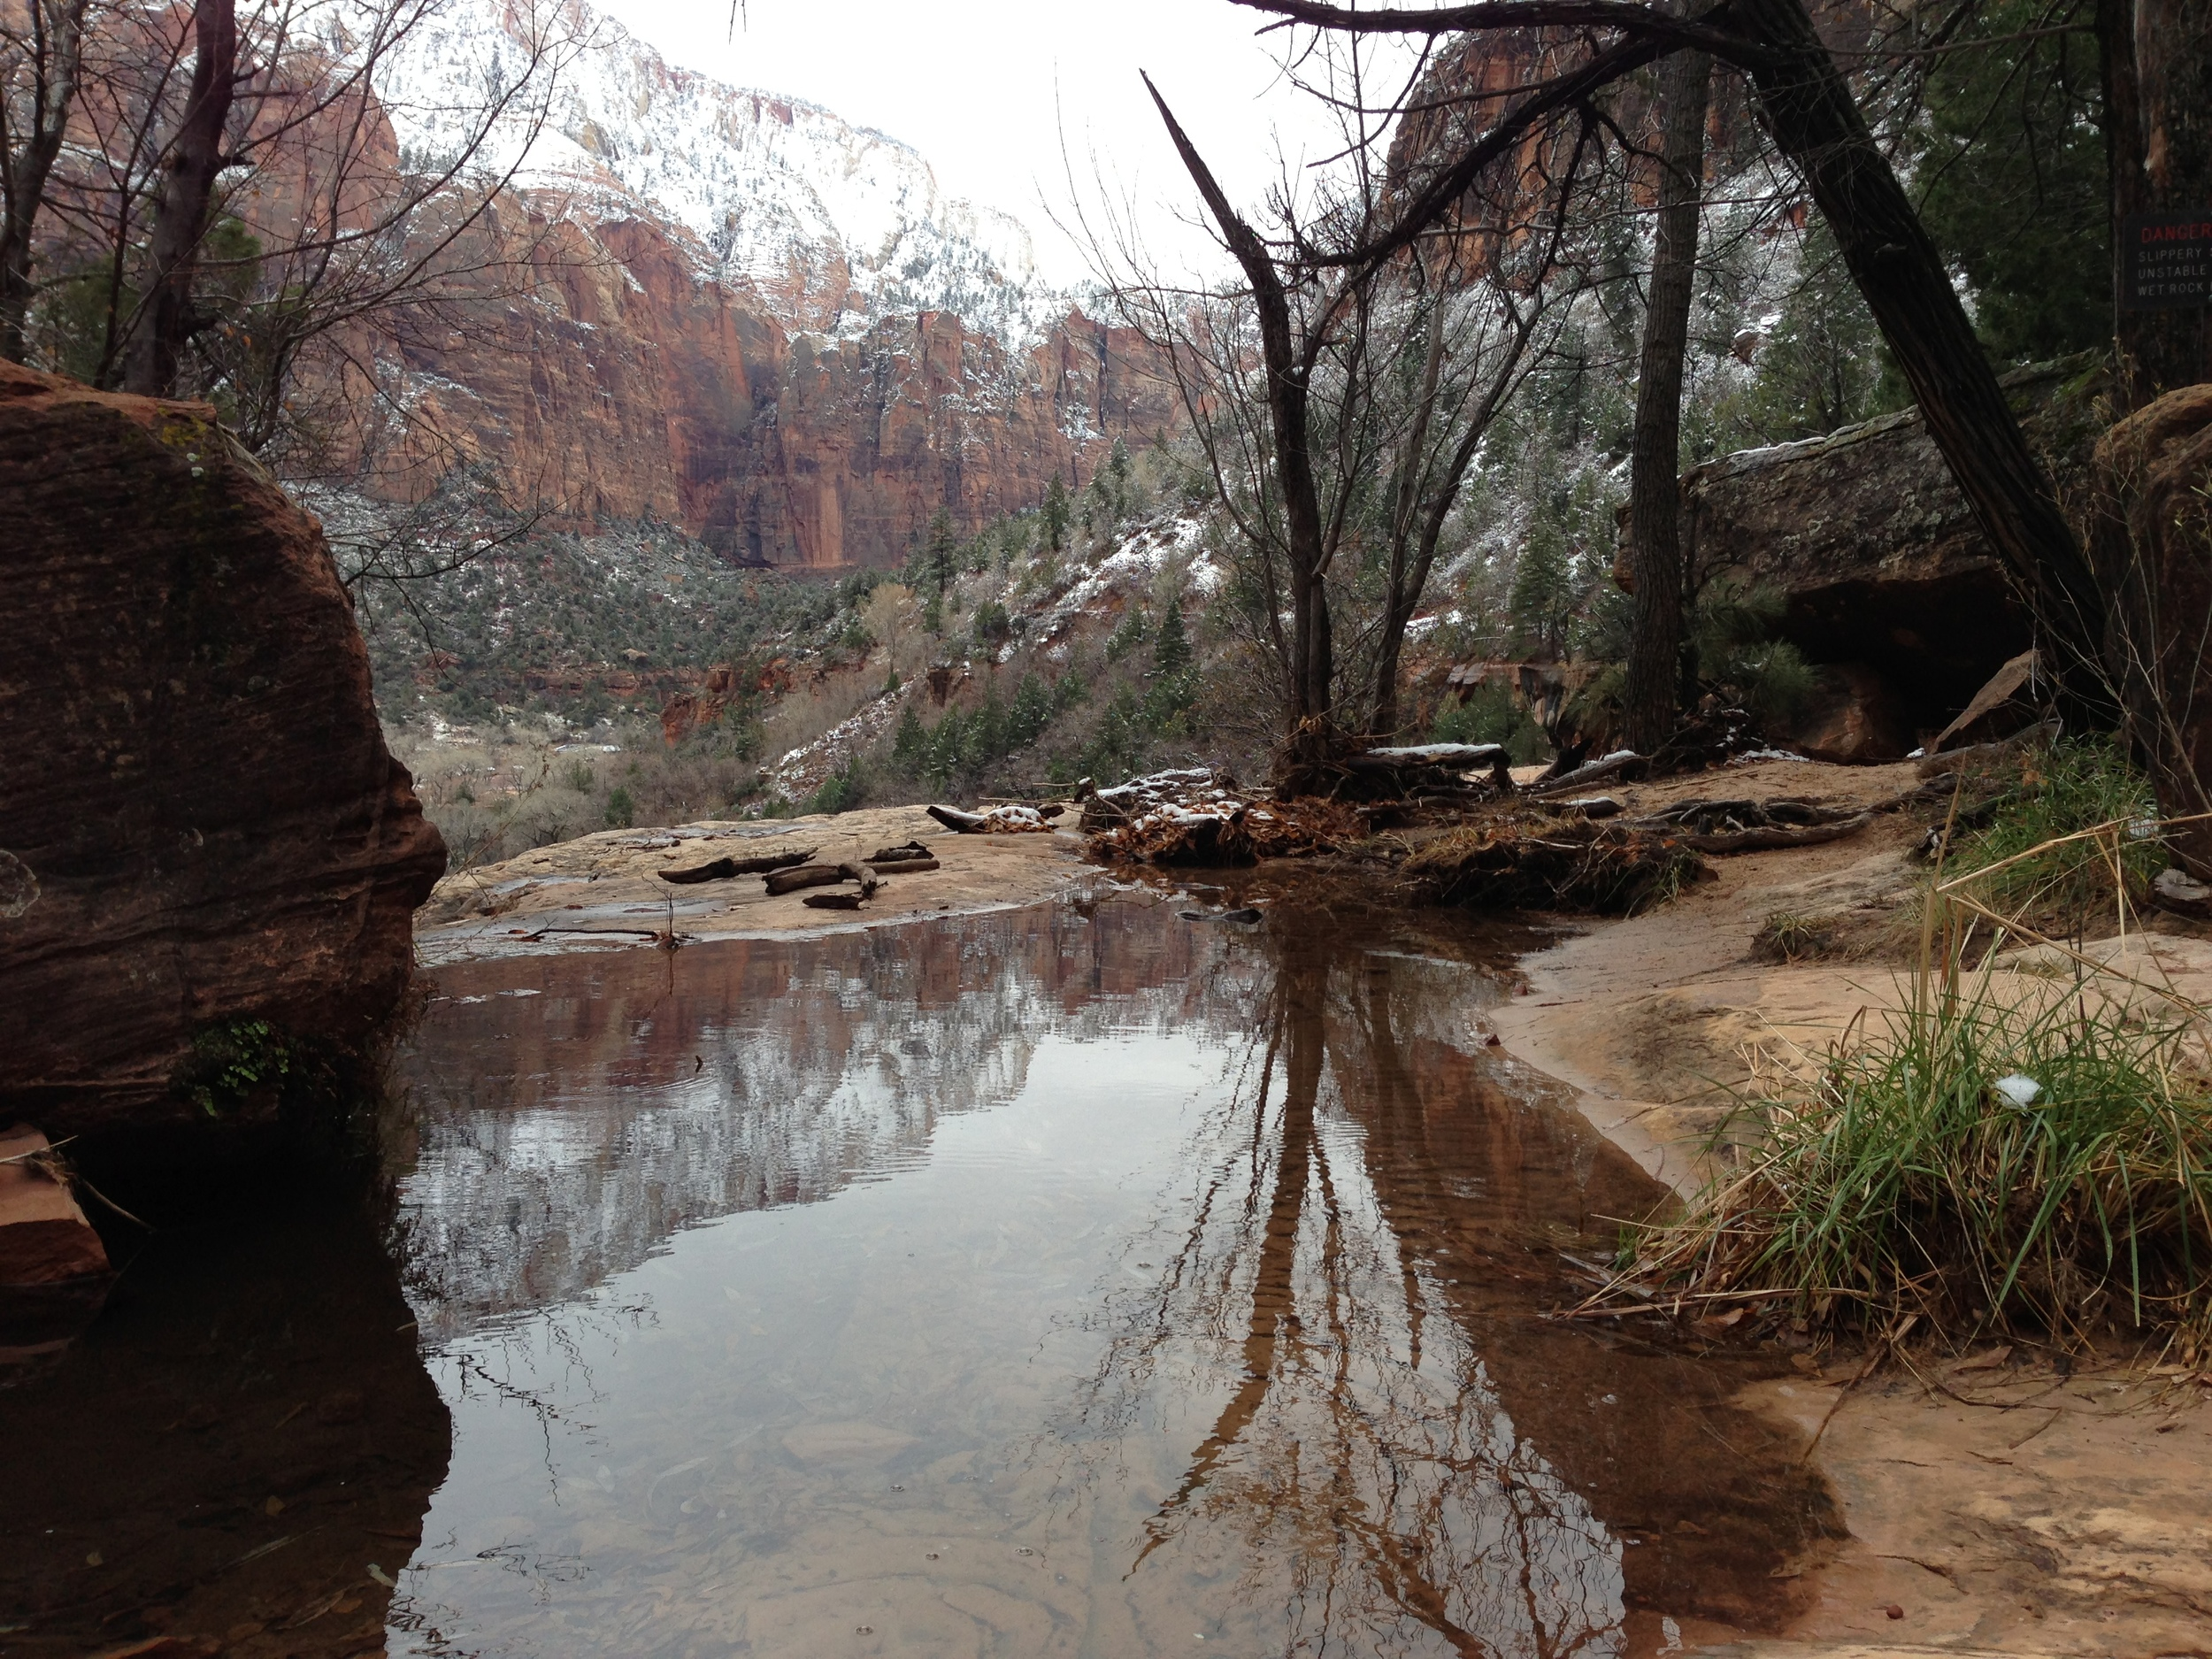 Middle Emerald Pool, Zion Canyon